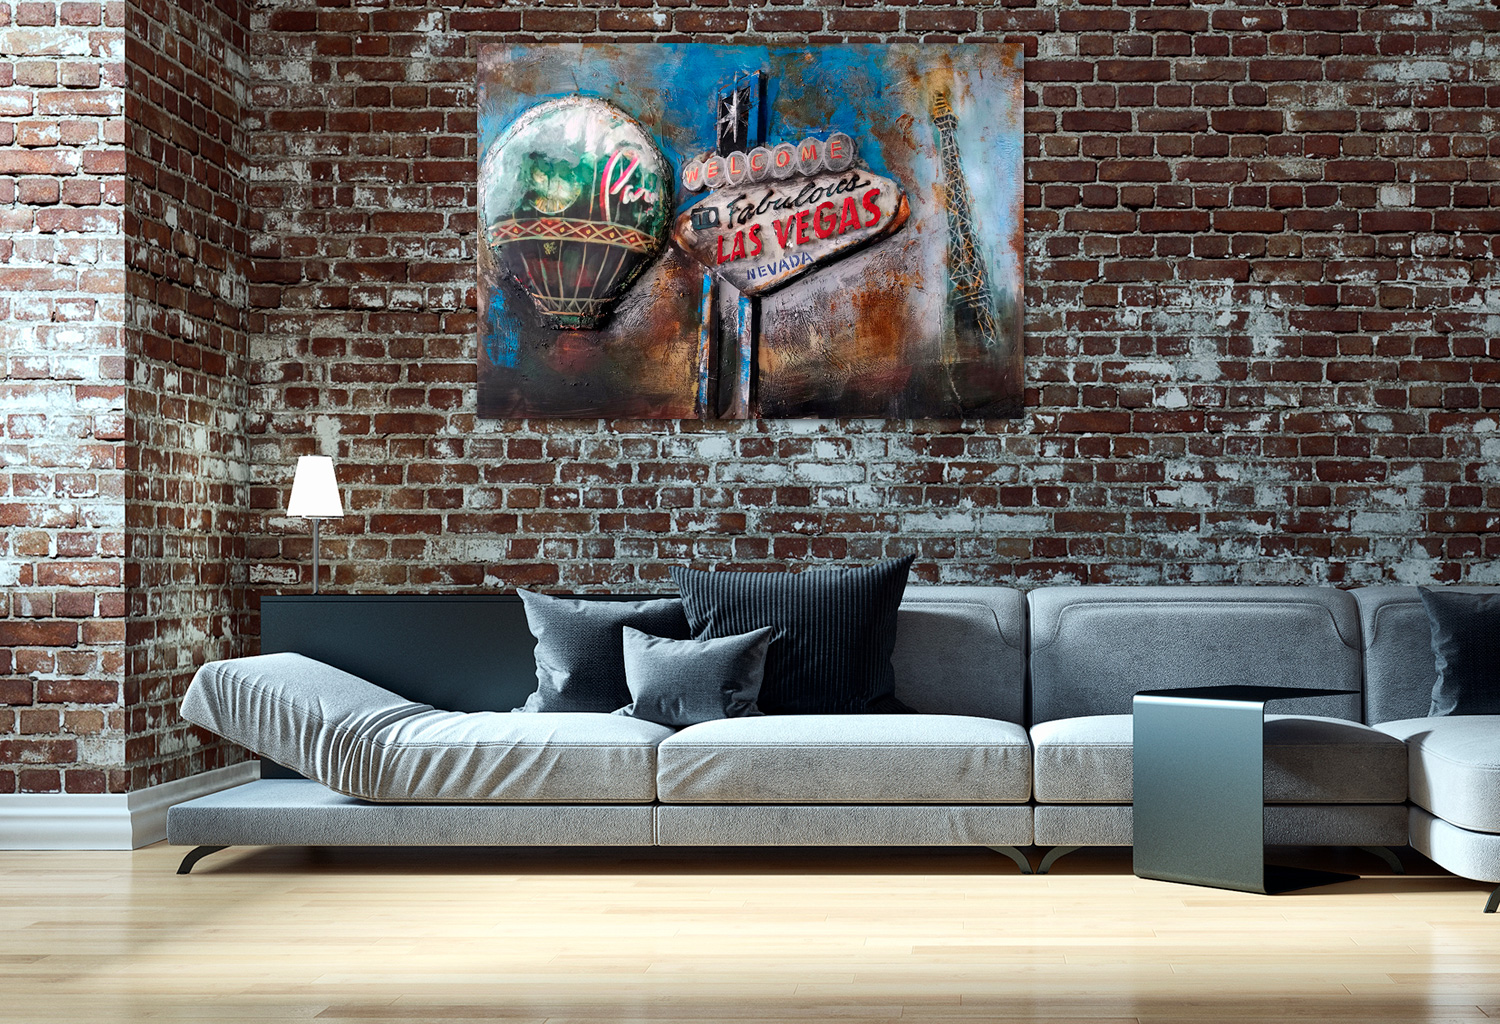 Metal Painting - wall art